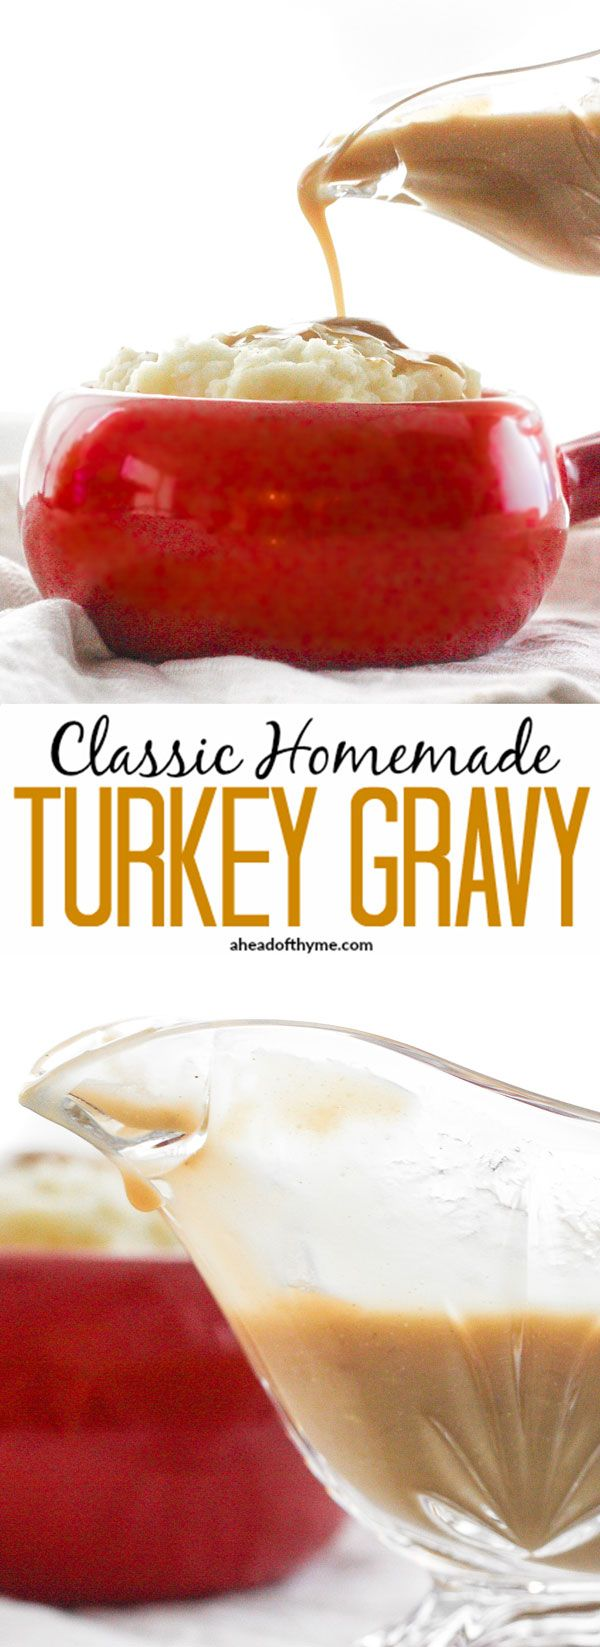 Classic Homemade Turkey Gravy: Thanksgiving is not the same without thick and delicious, classic homemade turkey gravy made using leftover drippings and homemade turkey stock. | aheadofthyme.com via @aheadofthyme